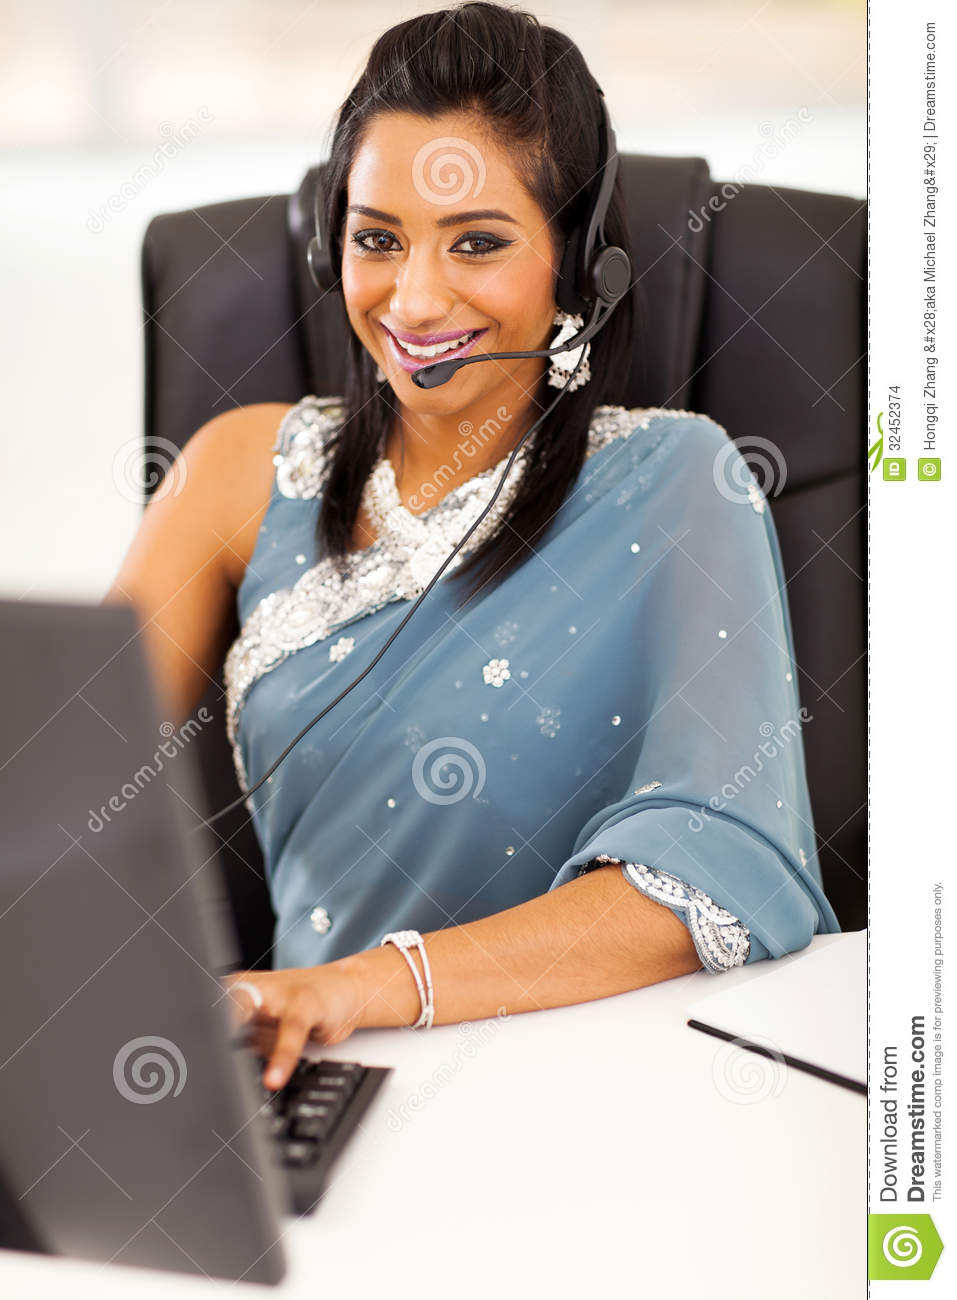 indian call centres At call centers india, you can find offshore inbound/outbound call centers and other bpo vendors offering services at very affordable cost contact us for any type of call center setup in india.